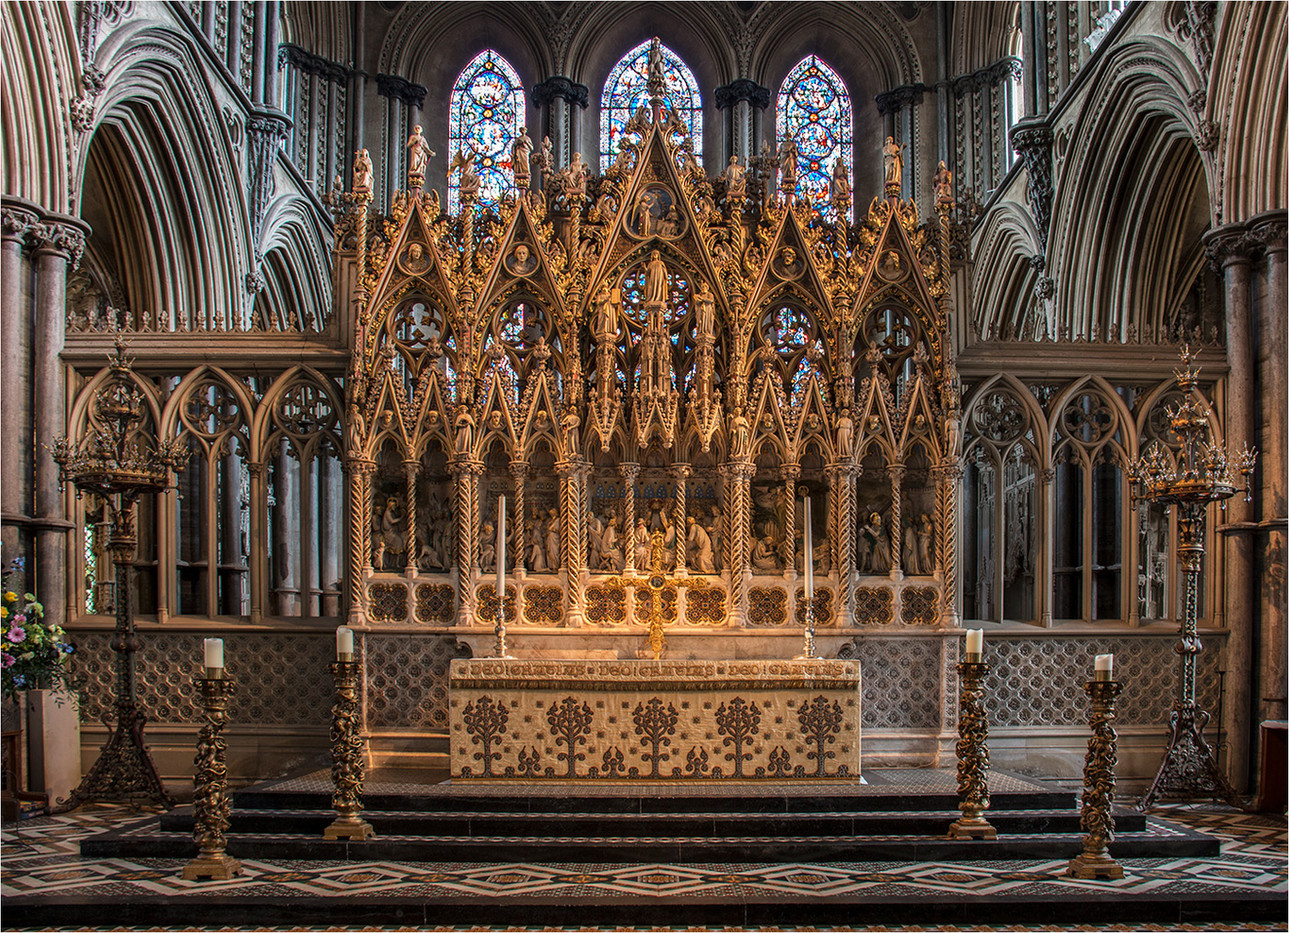 19 (3rd) HIGH ALTAR AND SCREEN ELY CATHEDRAL by Colin Burgess